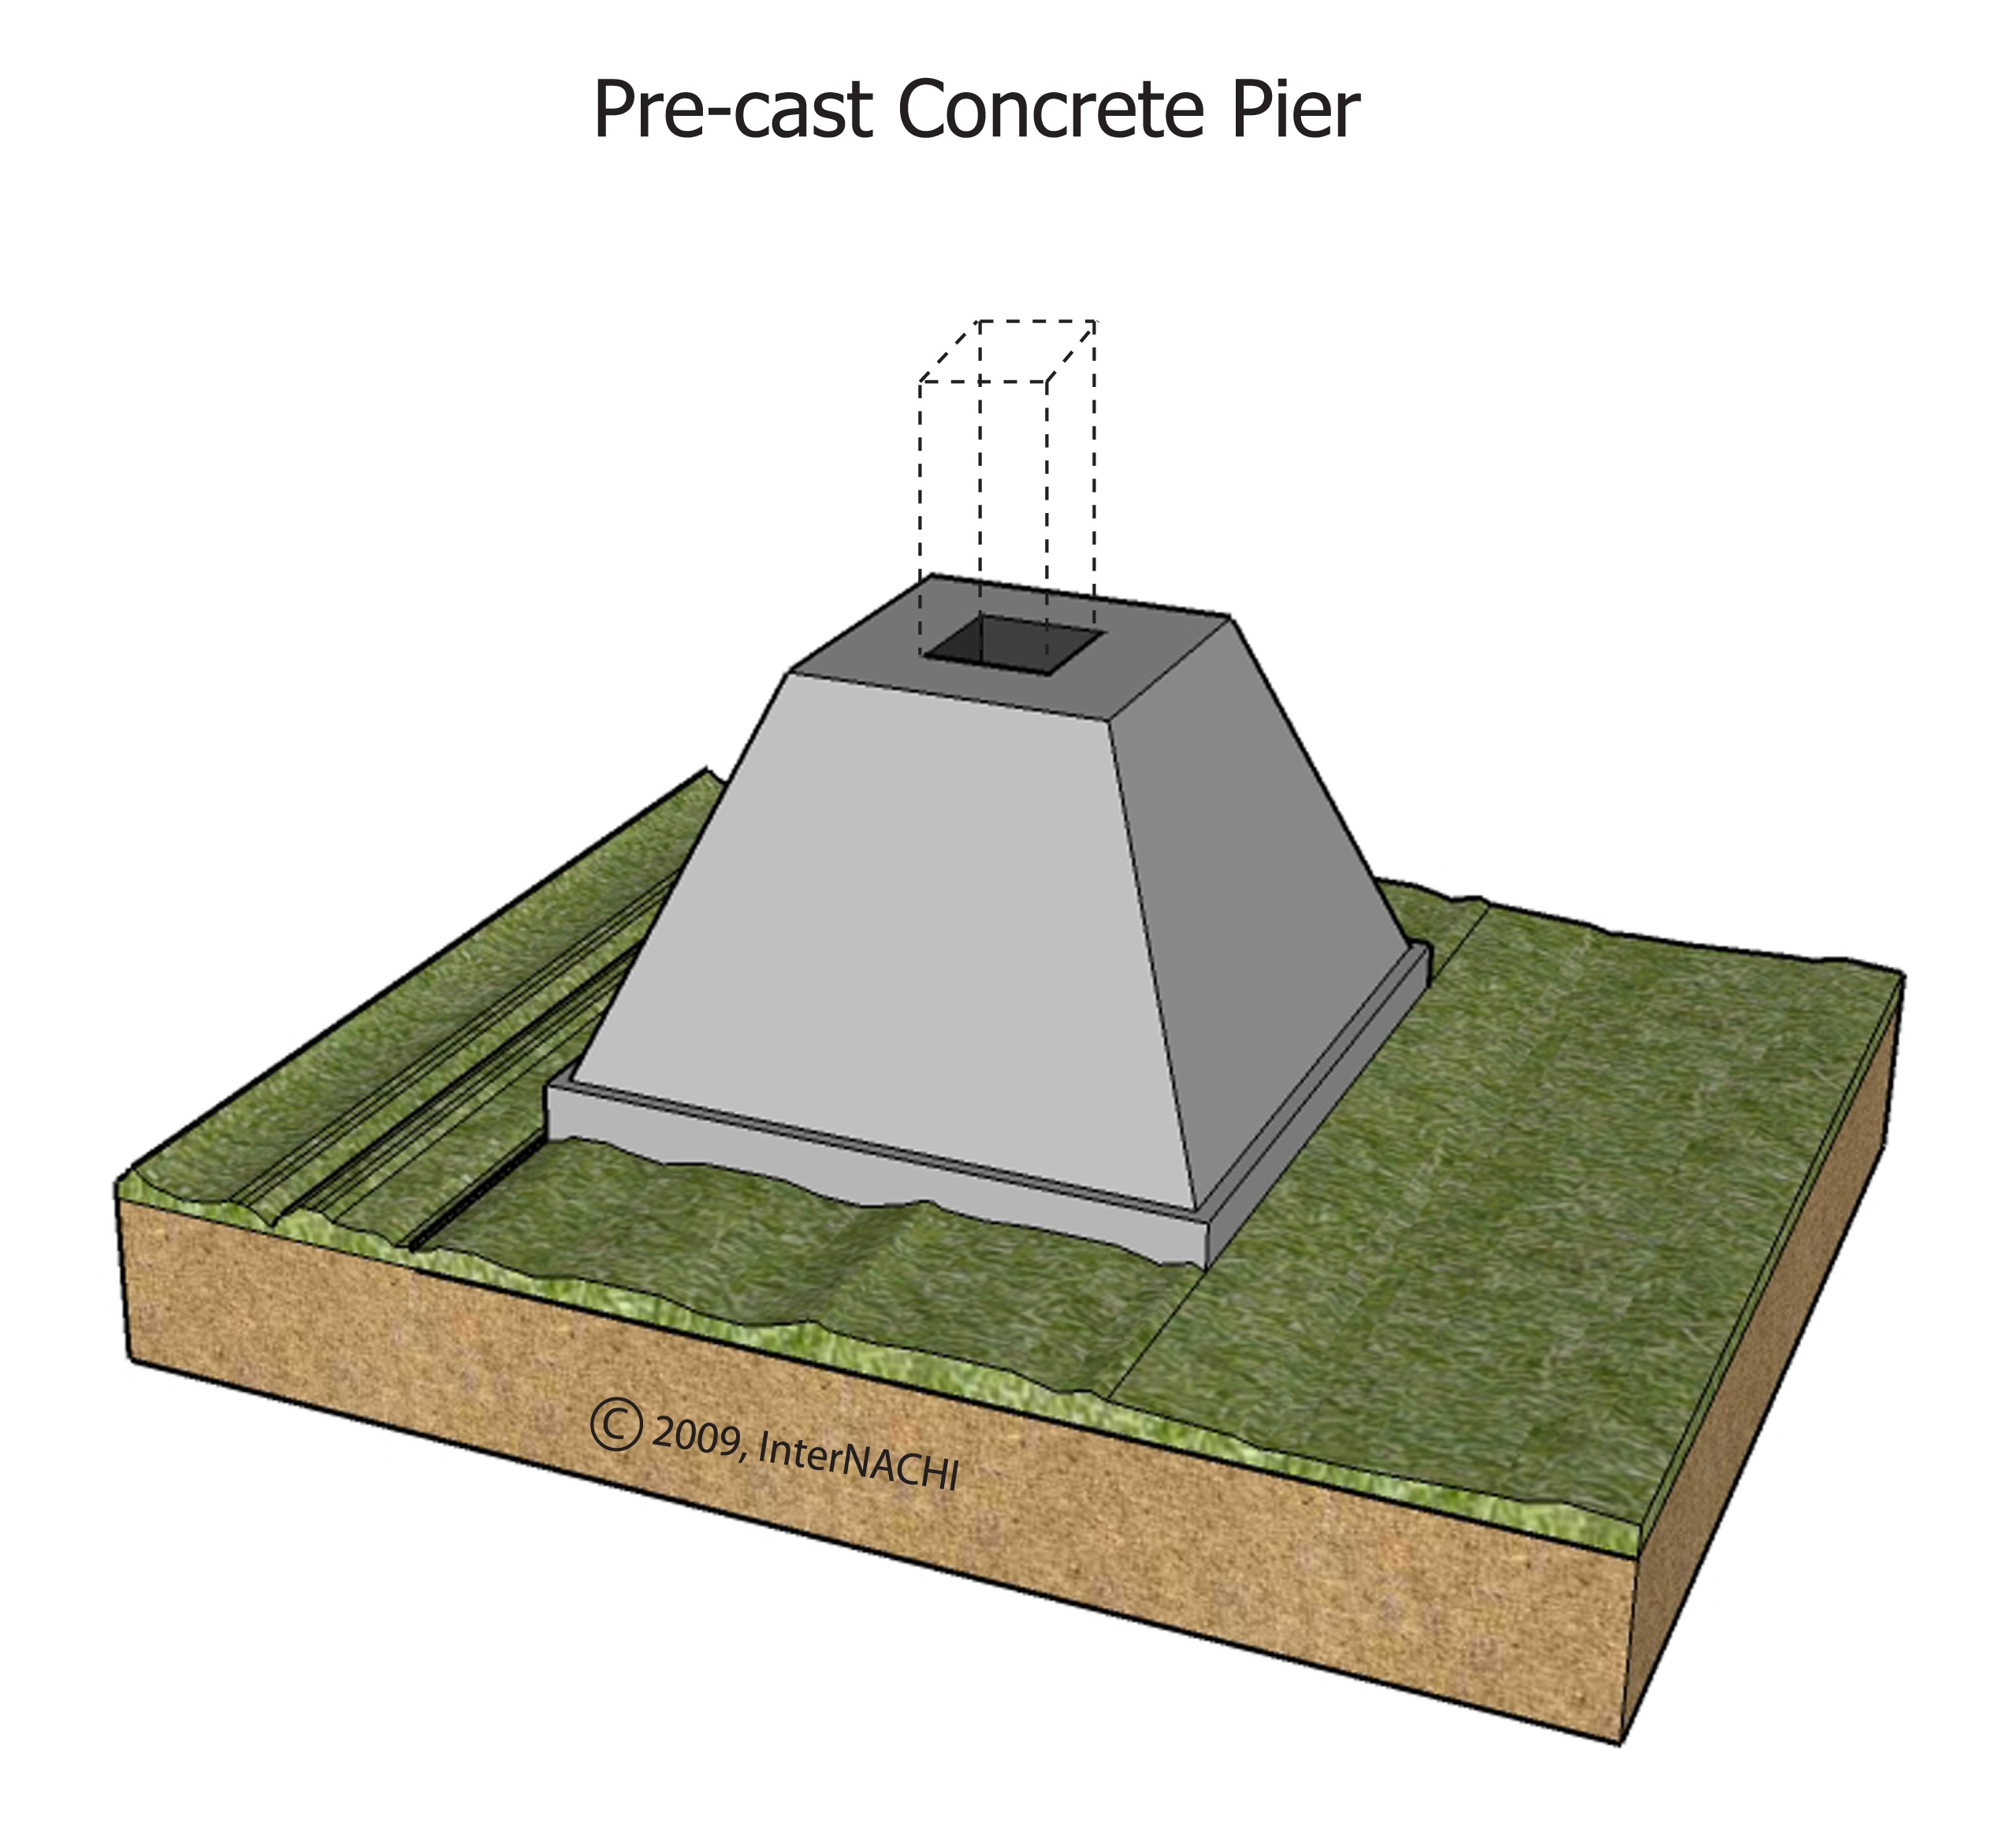 Concrete 4x4 Post Base | Precast Concrete Piers | Deck Footing Block